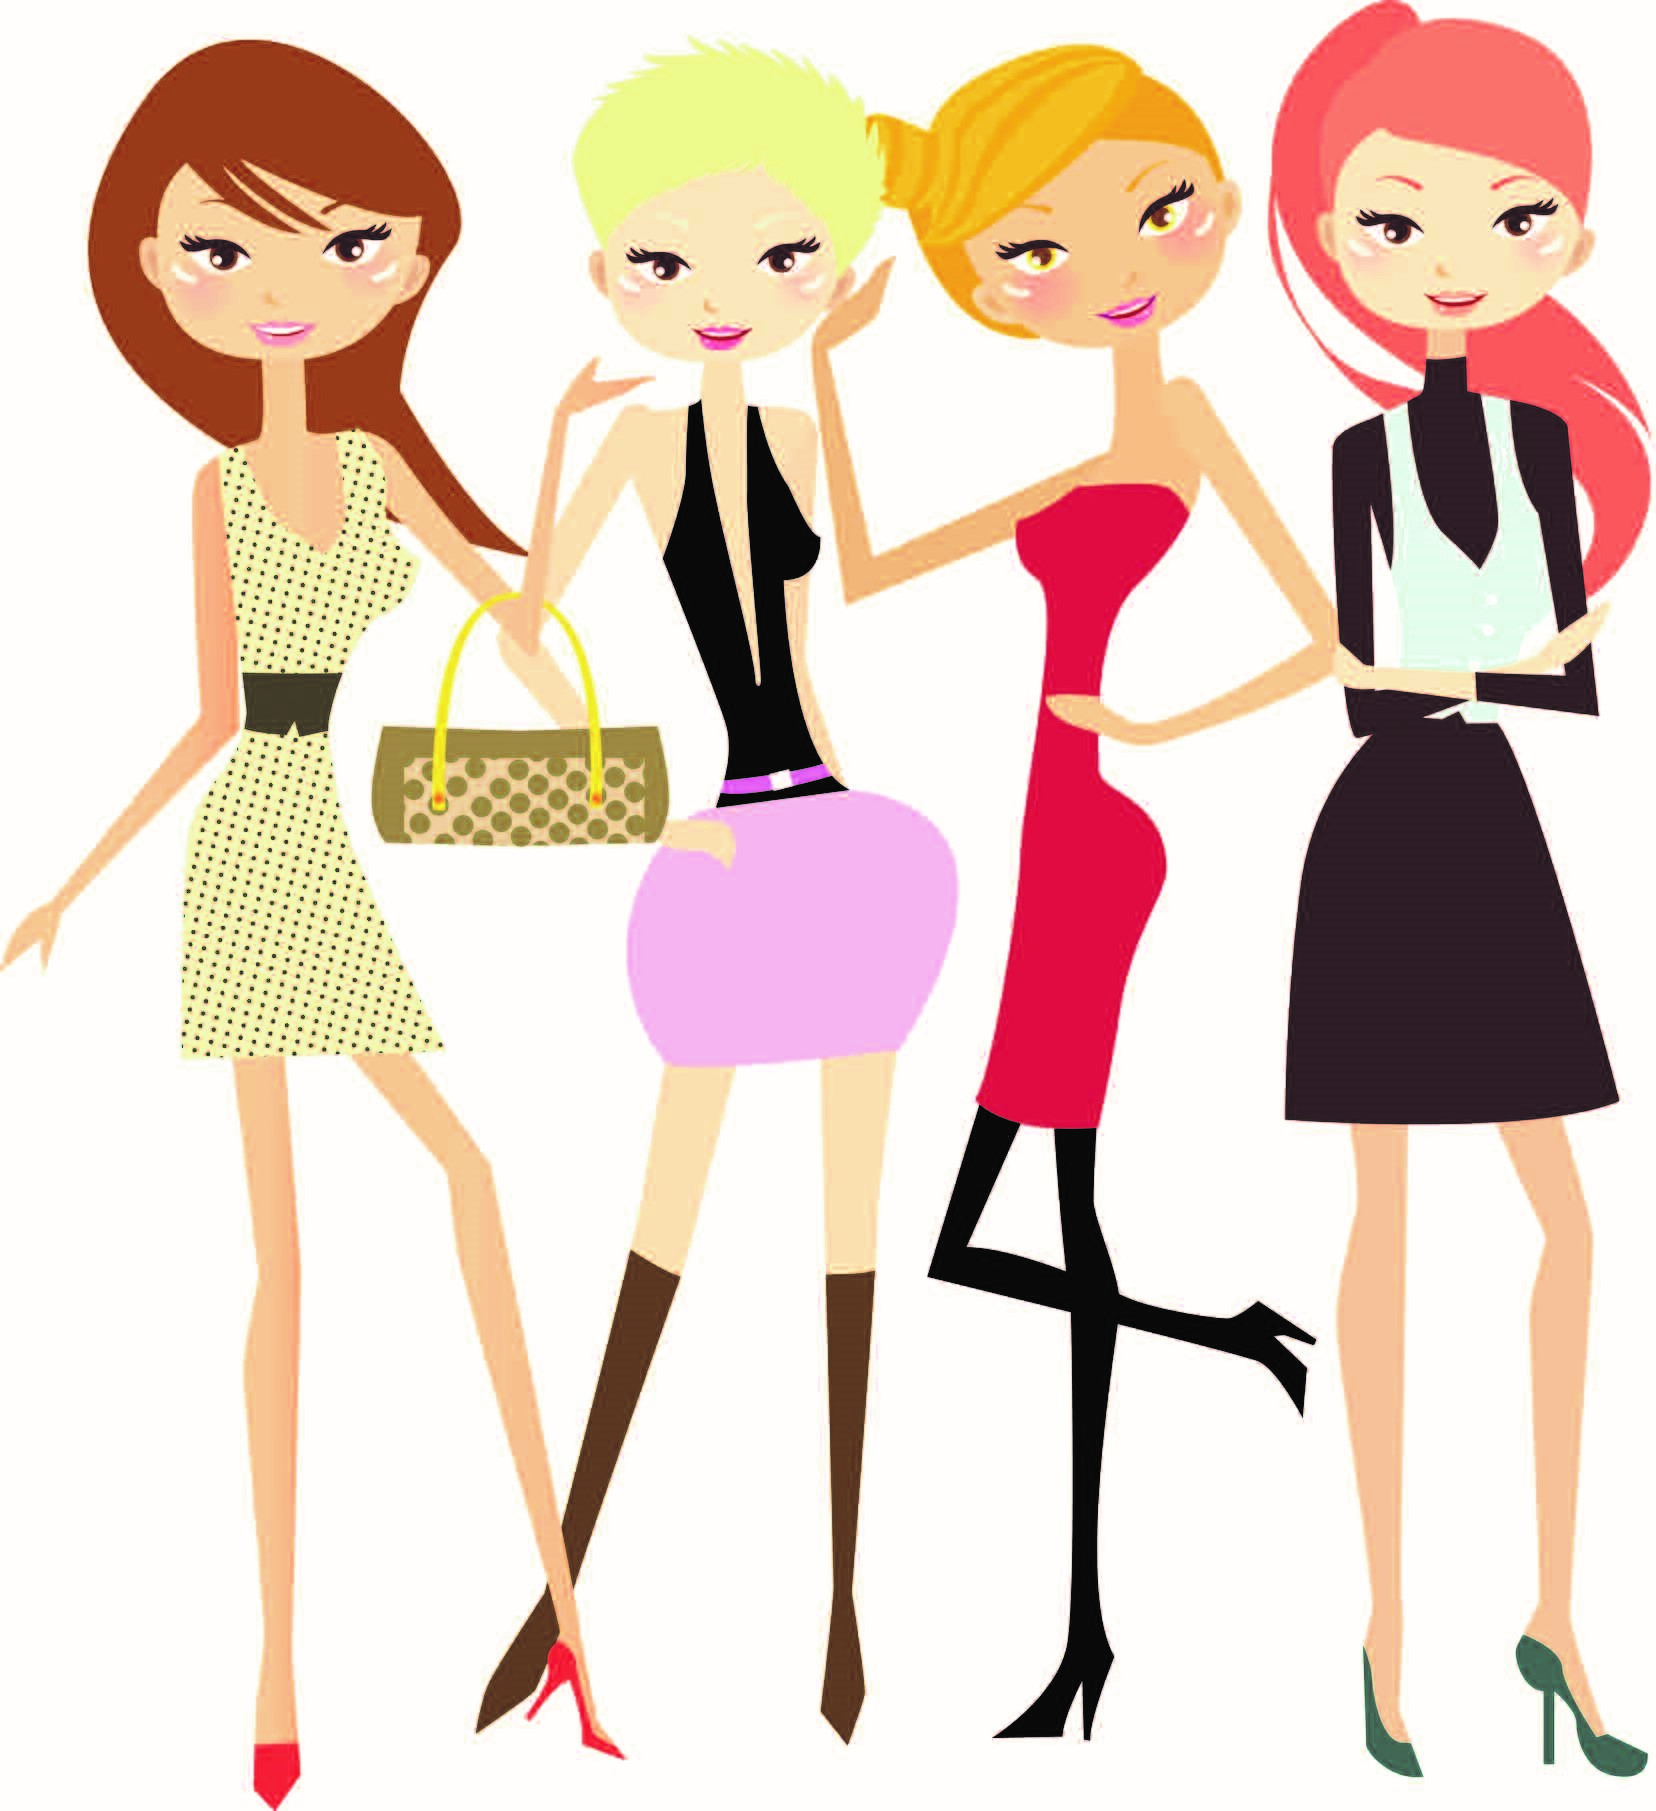 Ladies Night Out Clipart ... Resolution -Ladies Night Out Clipart ... Resolution 1656x1811 .-17